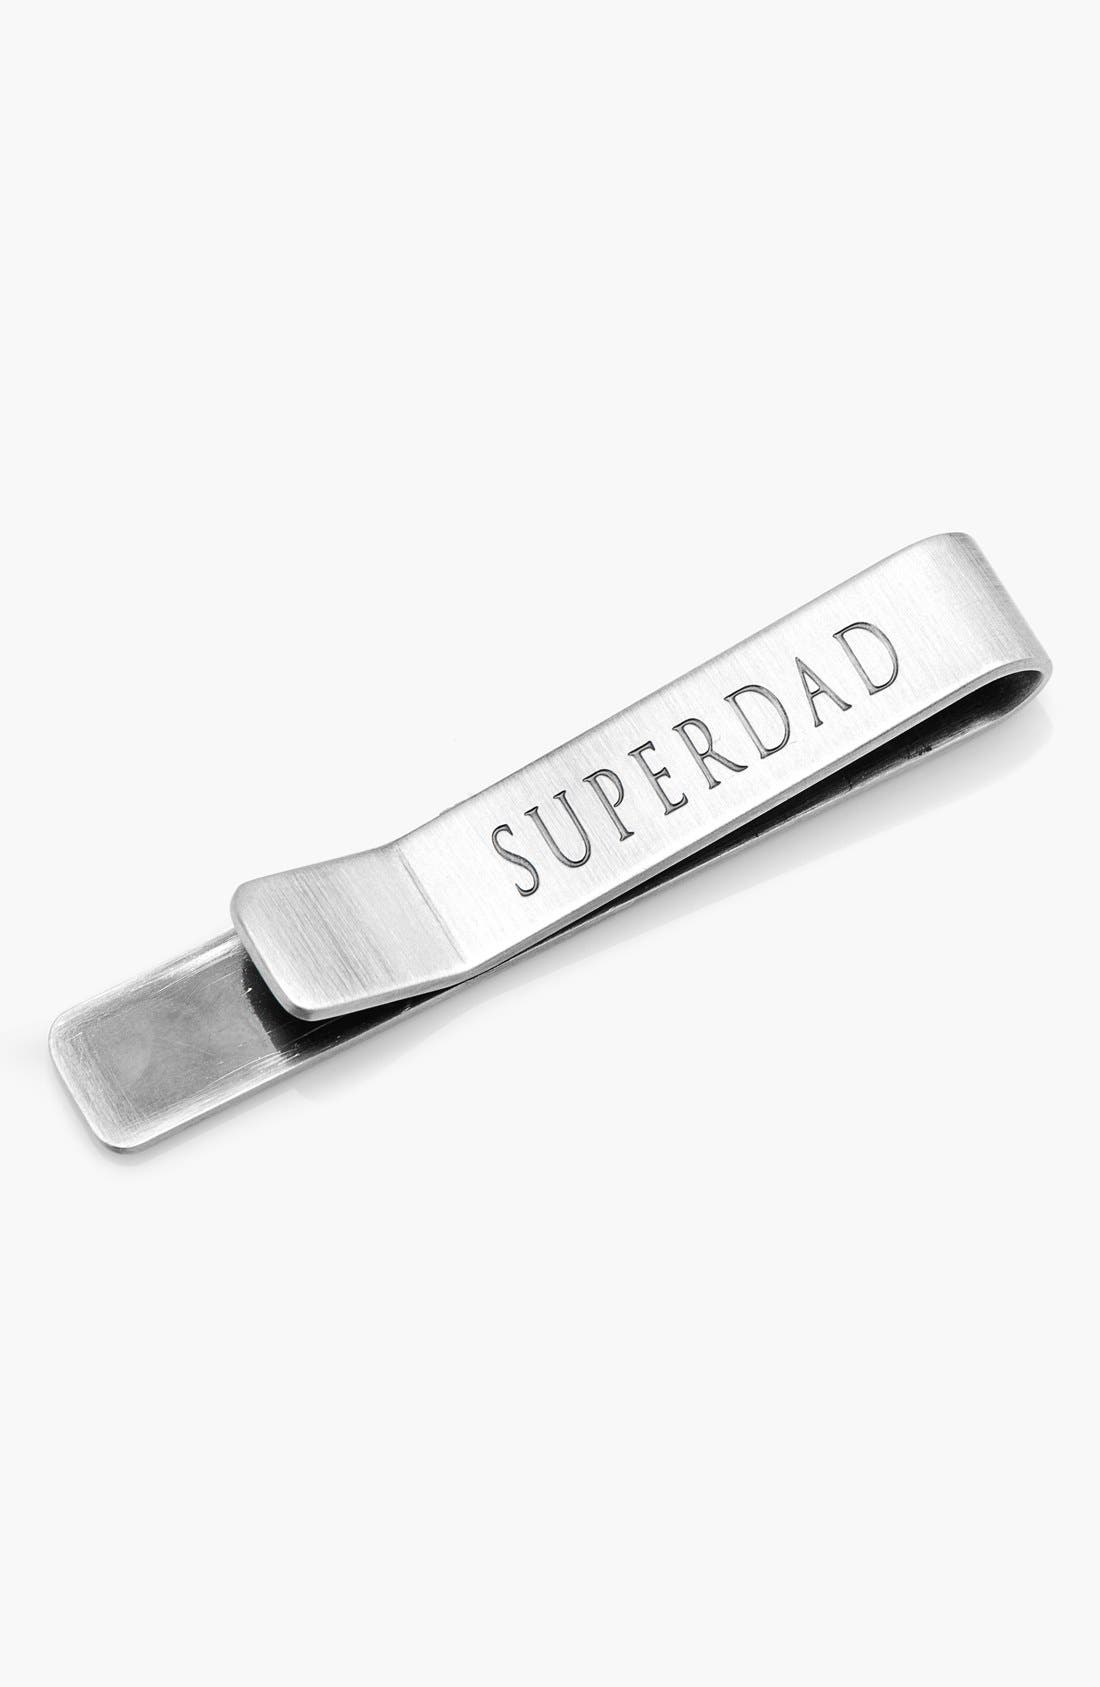 OX AND BULL TRADING CO. 'Superdad' Tie Bar, Main, color, SILVER